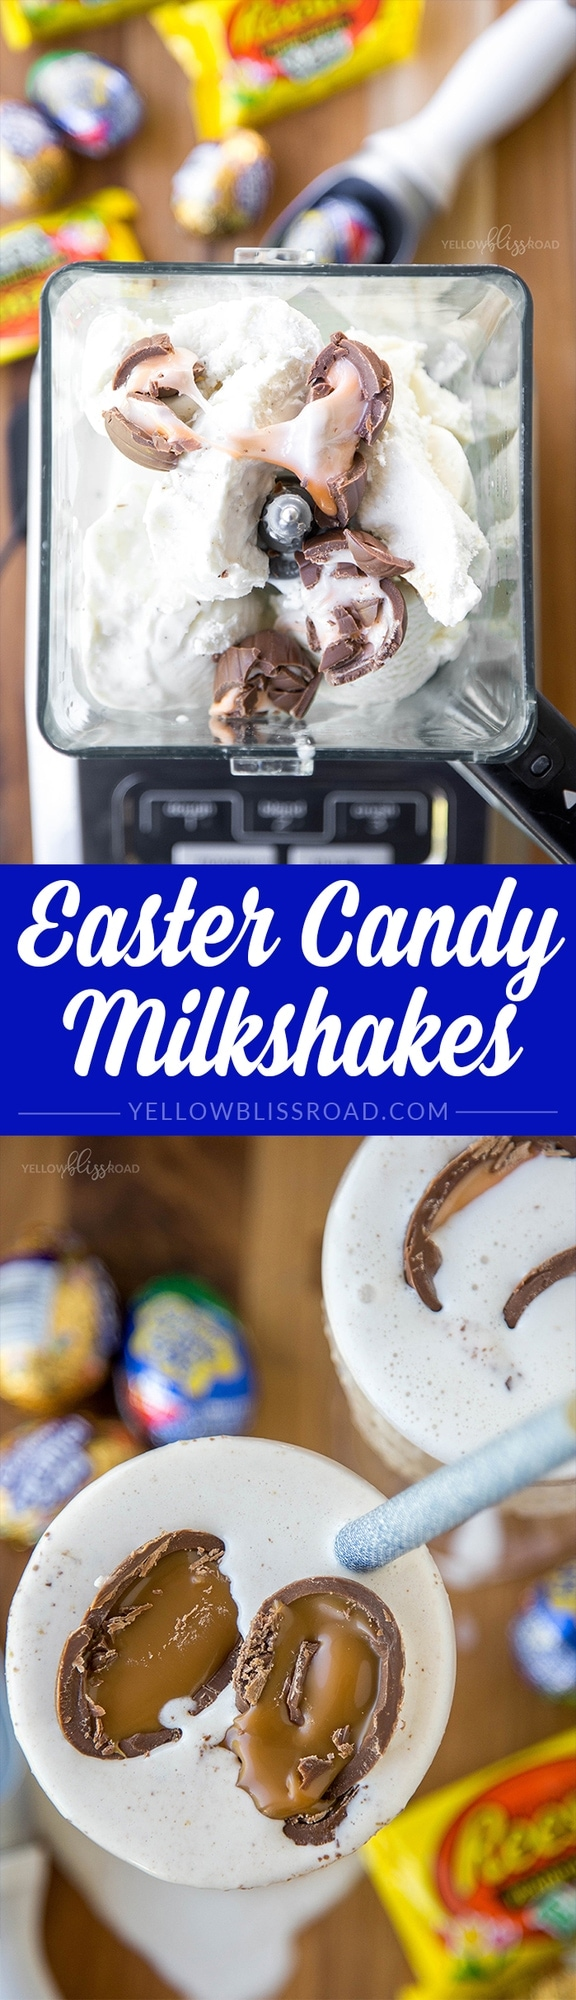 Easter Candy Milkshakes - a super easy and fun treat for Easter adn beyond, made with Hershey's candies like Cadbury Creme Eggs and Reese's Peanut Butter Eggs. (ad)